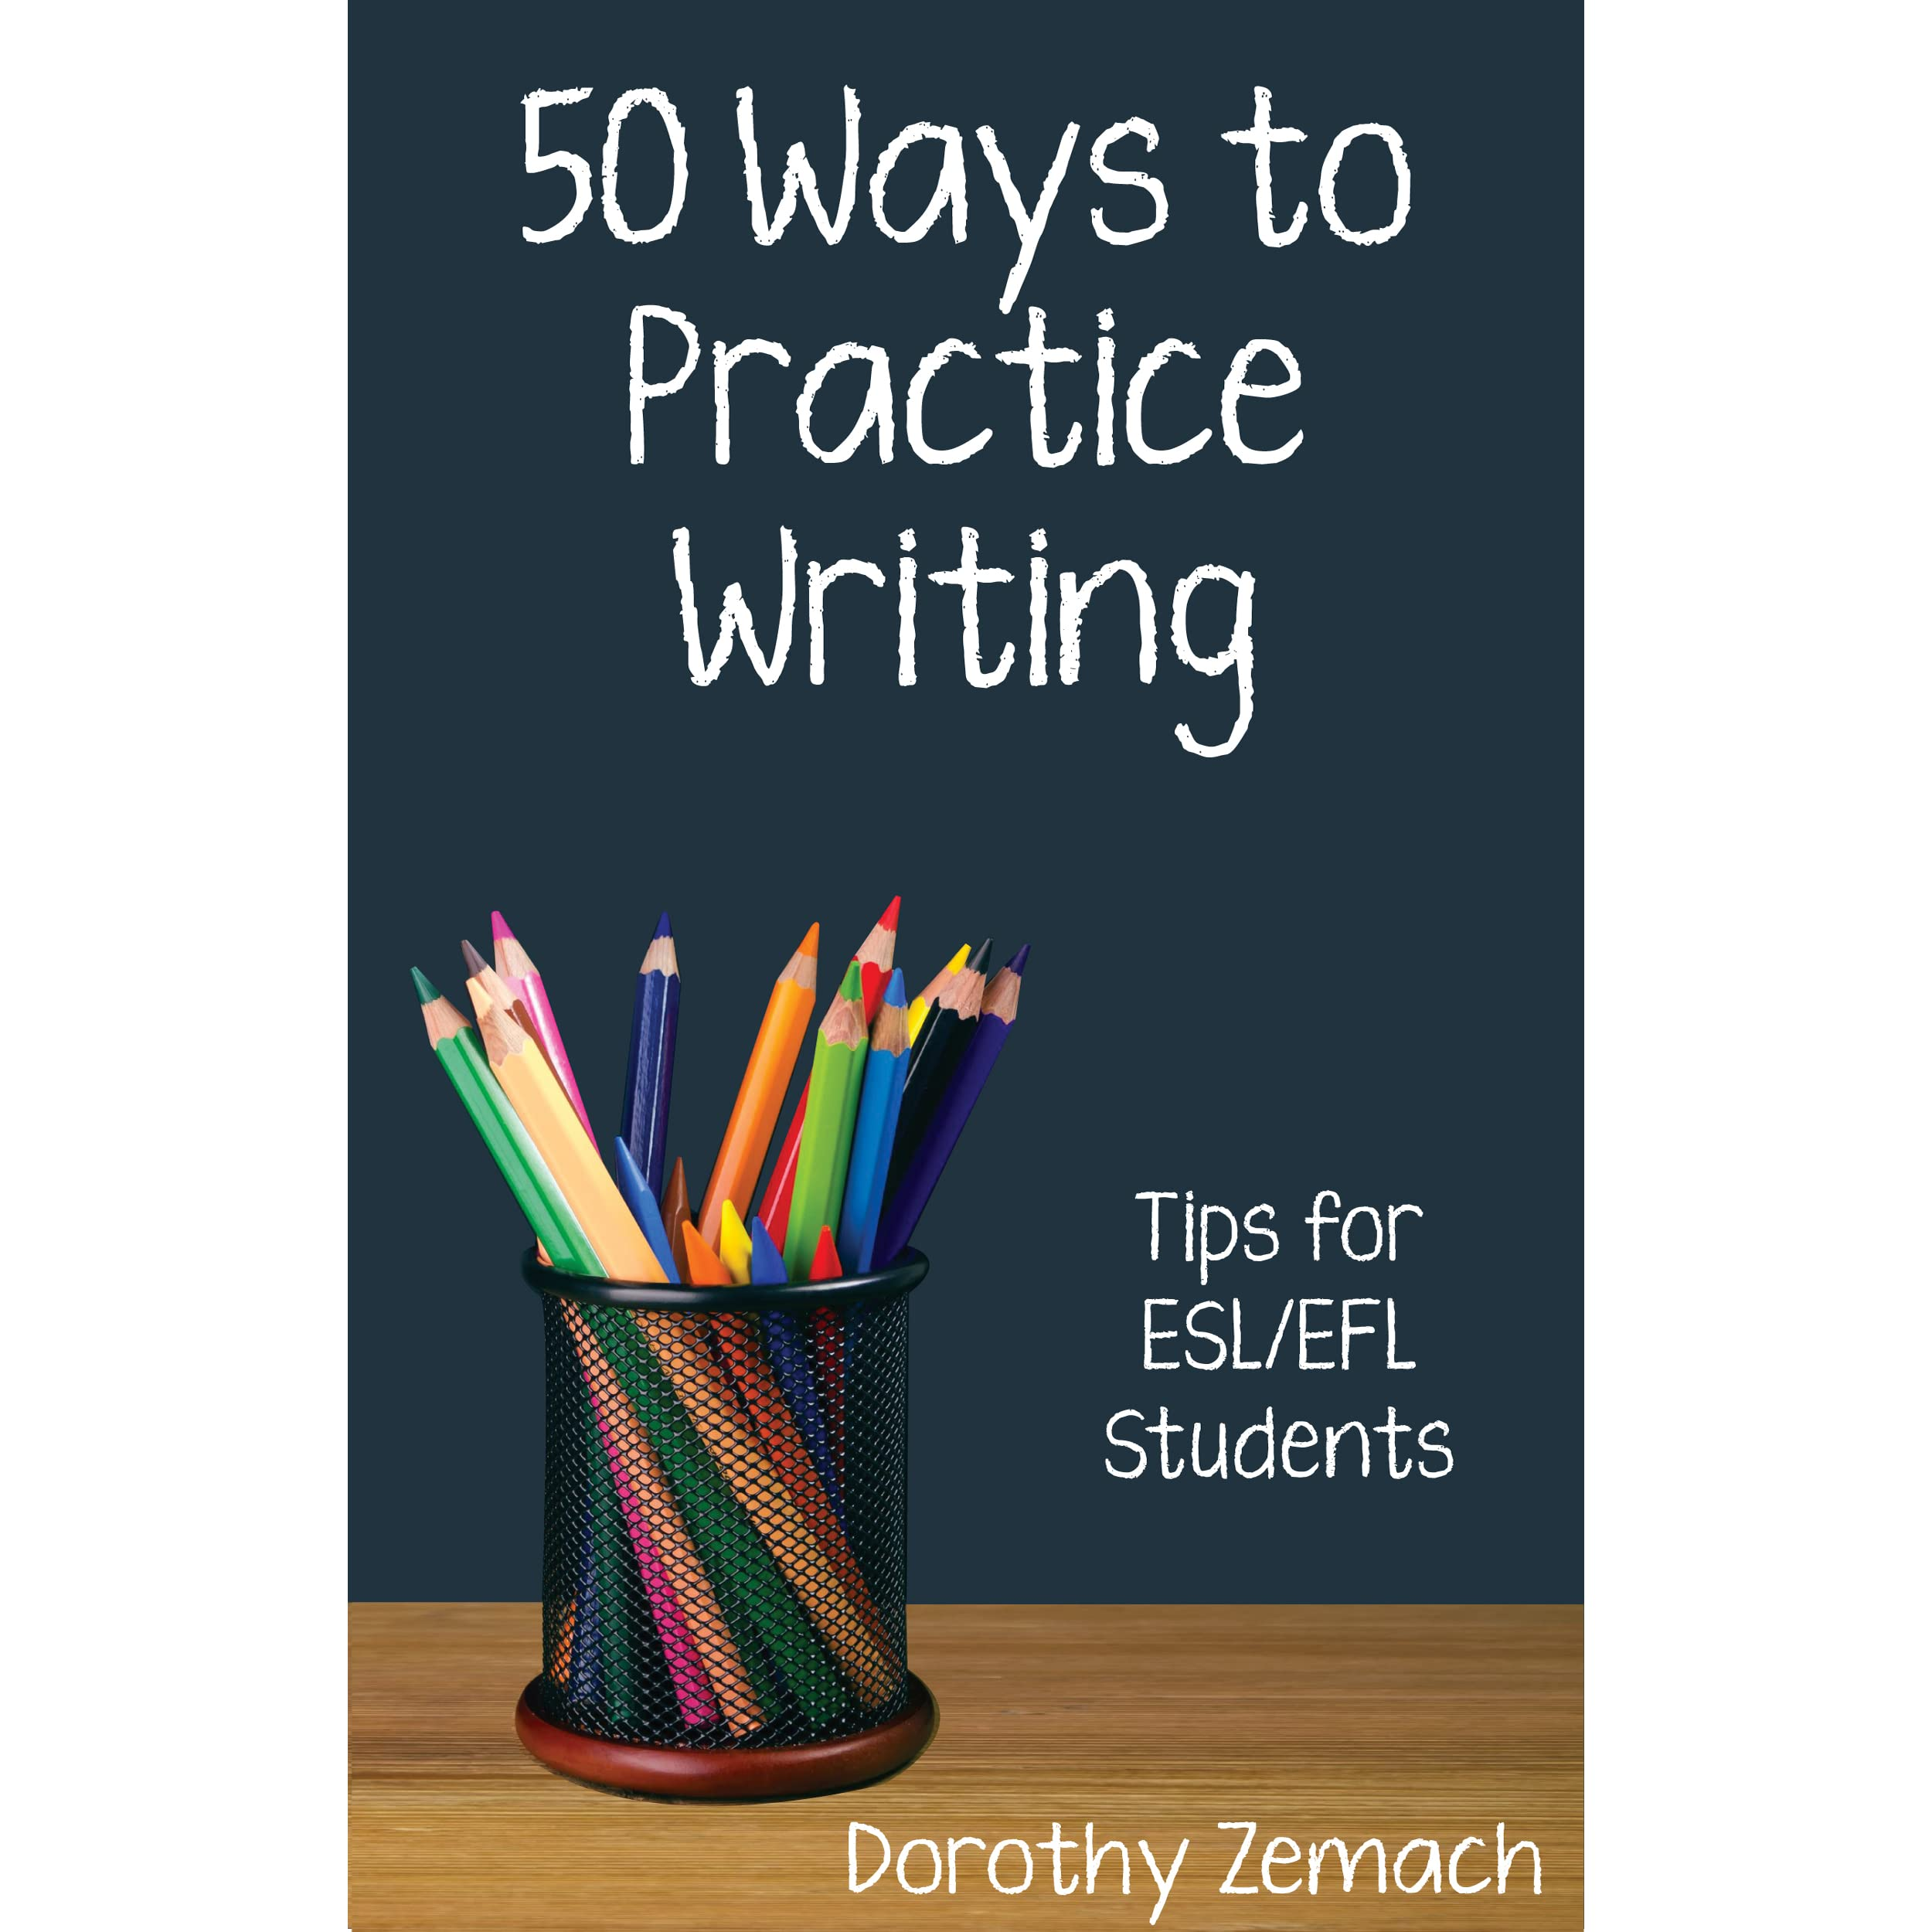 best practices in writing The cft has prepared guides to a variety of teaching topics with summaries of best practices, links to other online resources, and information about local vanderbilt resources.